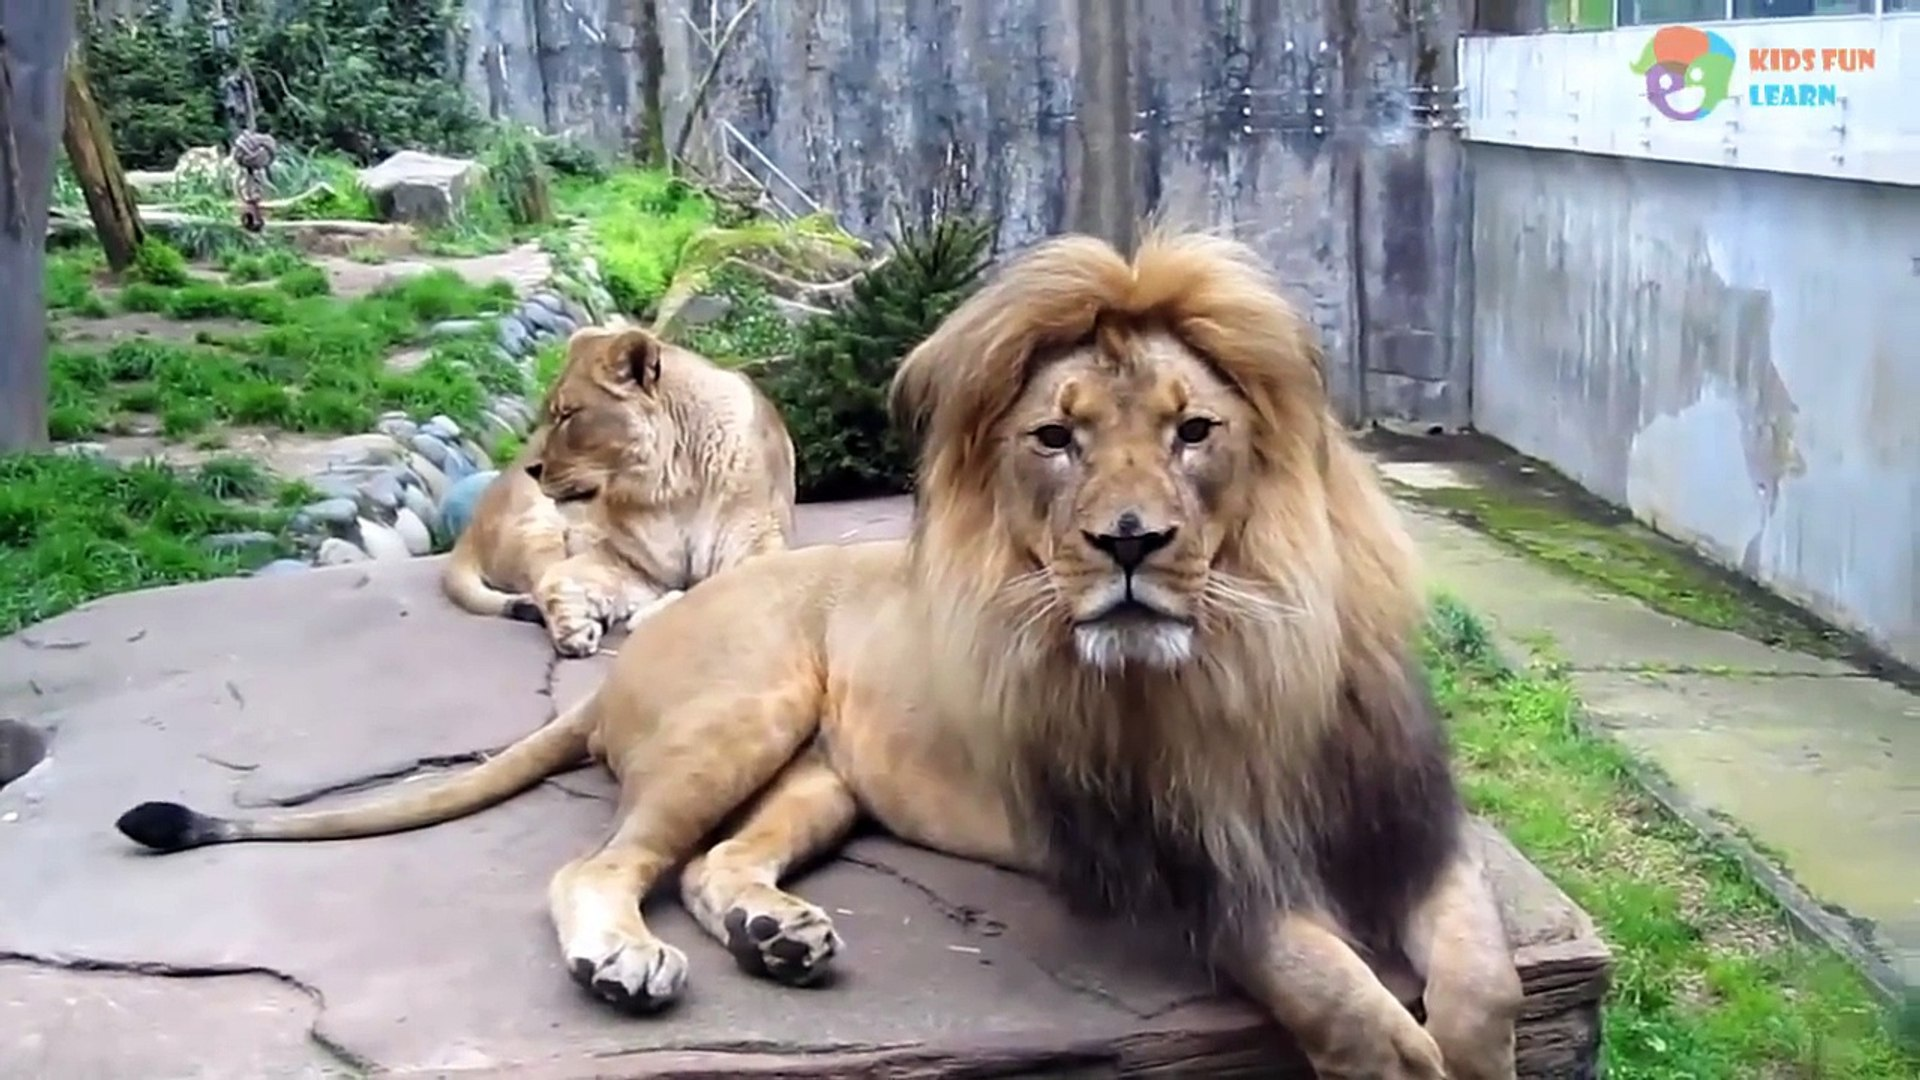 Kids and wild animals At The Zoo: Rainforest Animals and African animals - Animals learn for kids